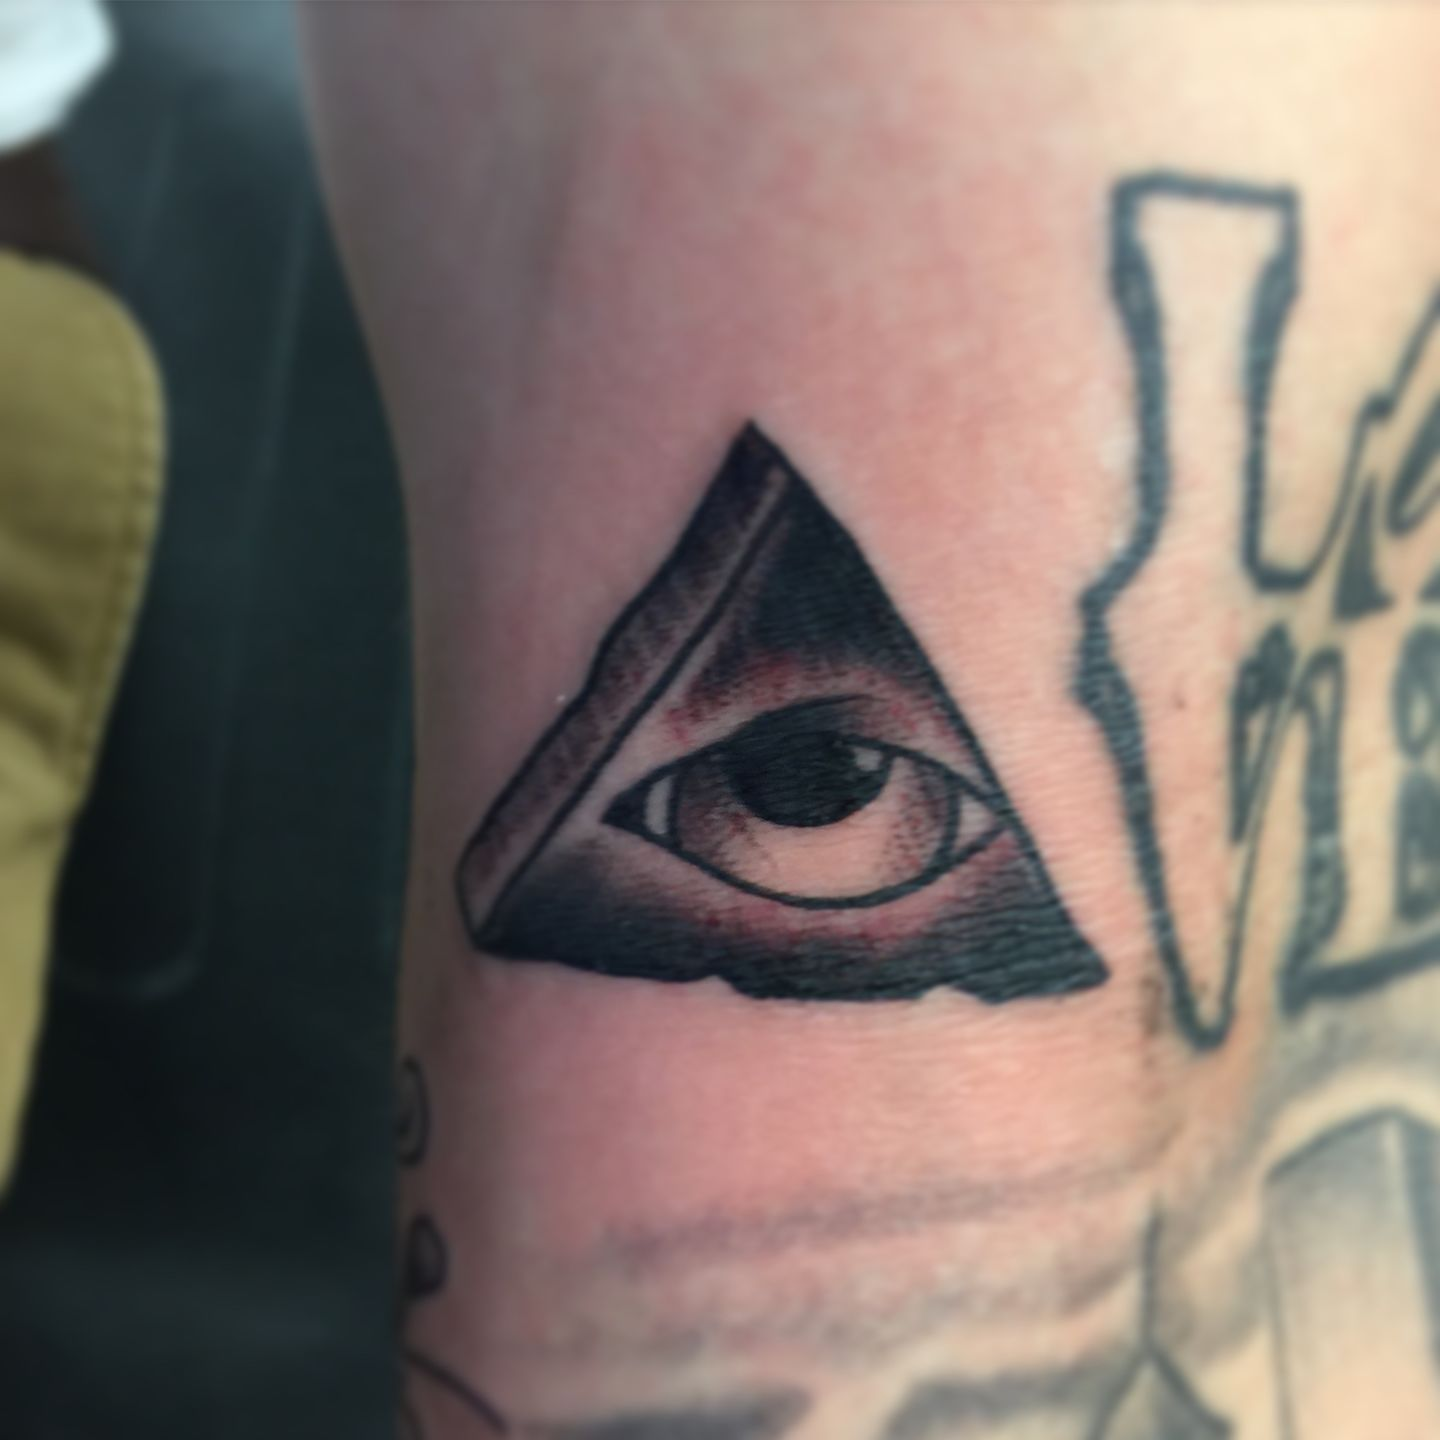 ronak:all-seeing-eye-all-seeing-eye-black-work-eye-pyramid-black ...